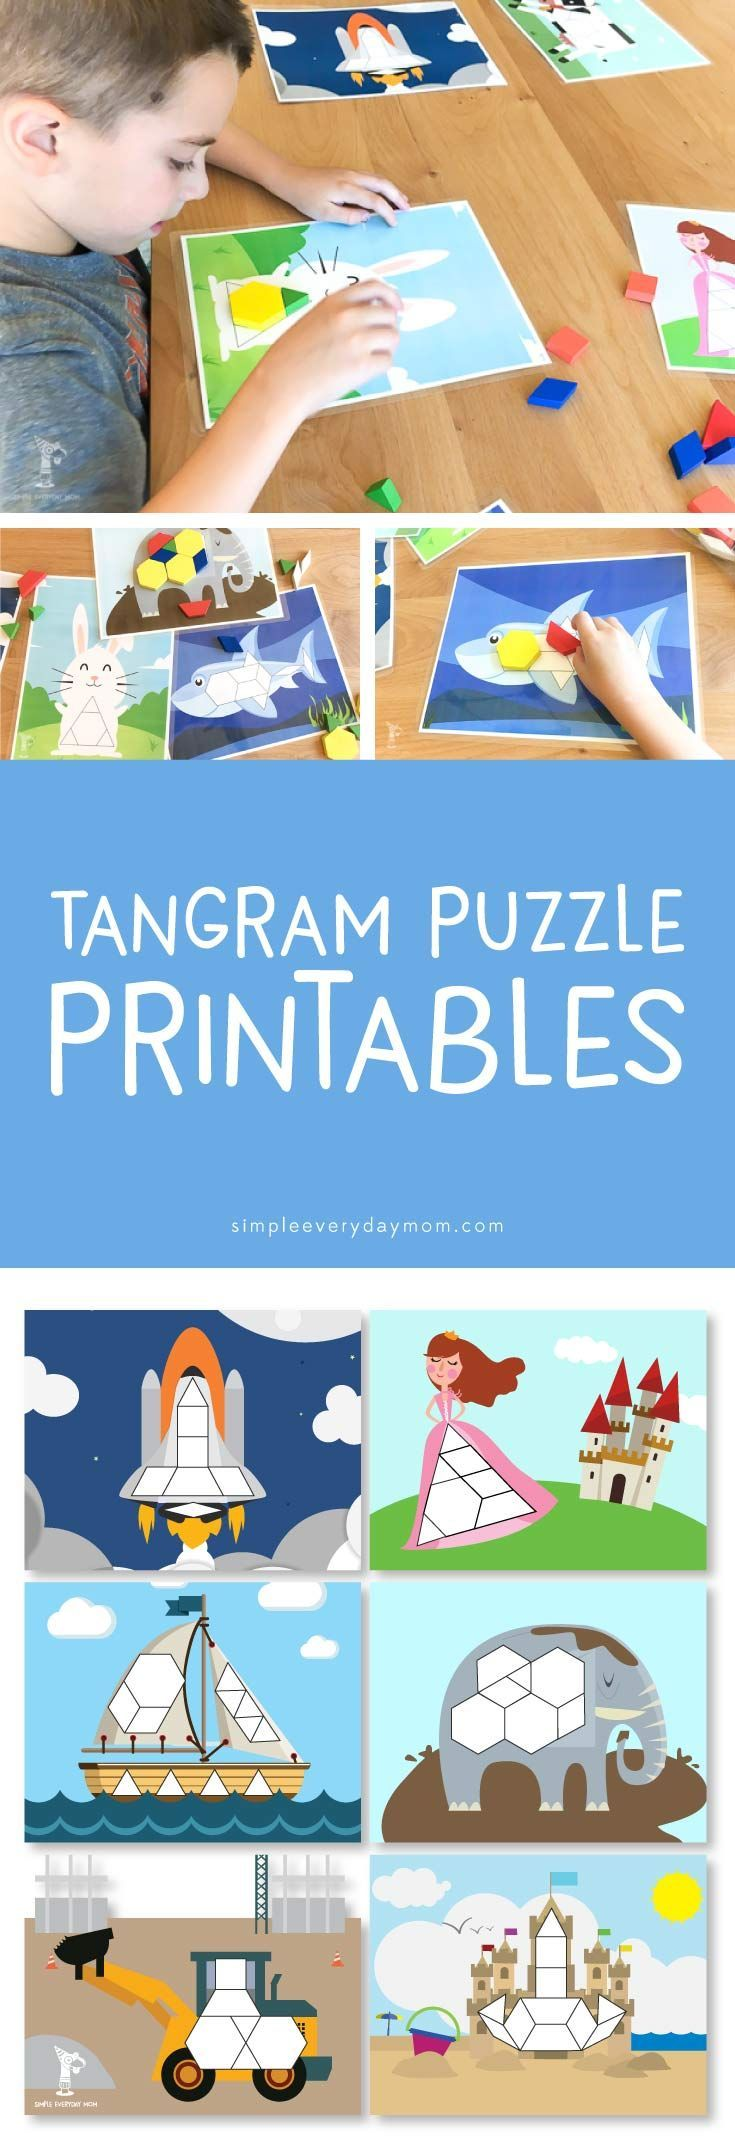 tangram printable | math activities for kids | learn shapes